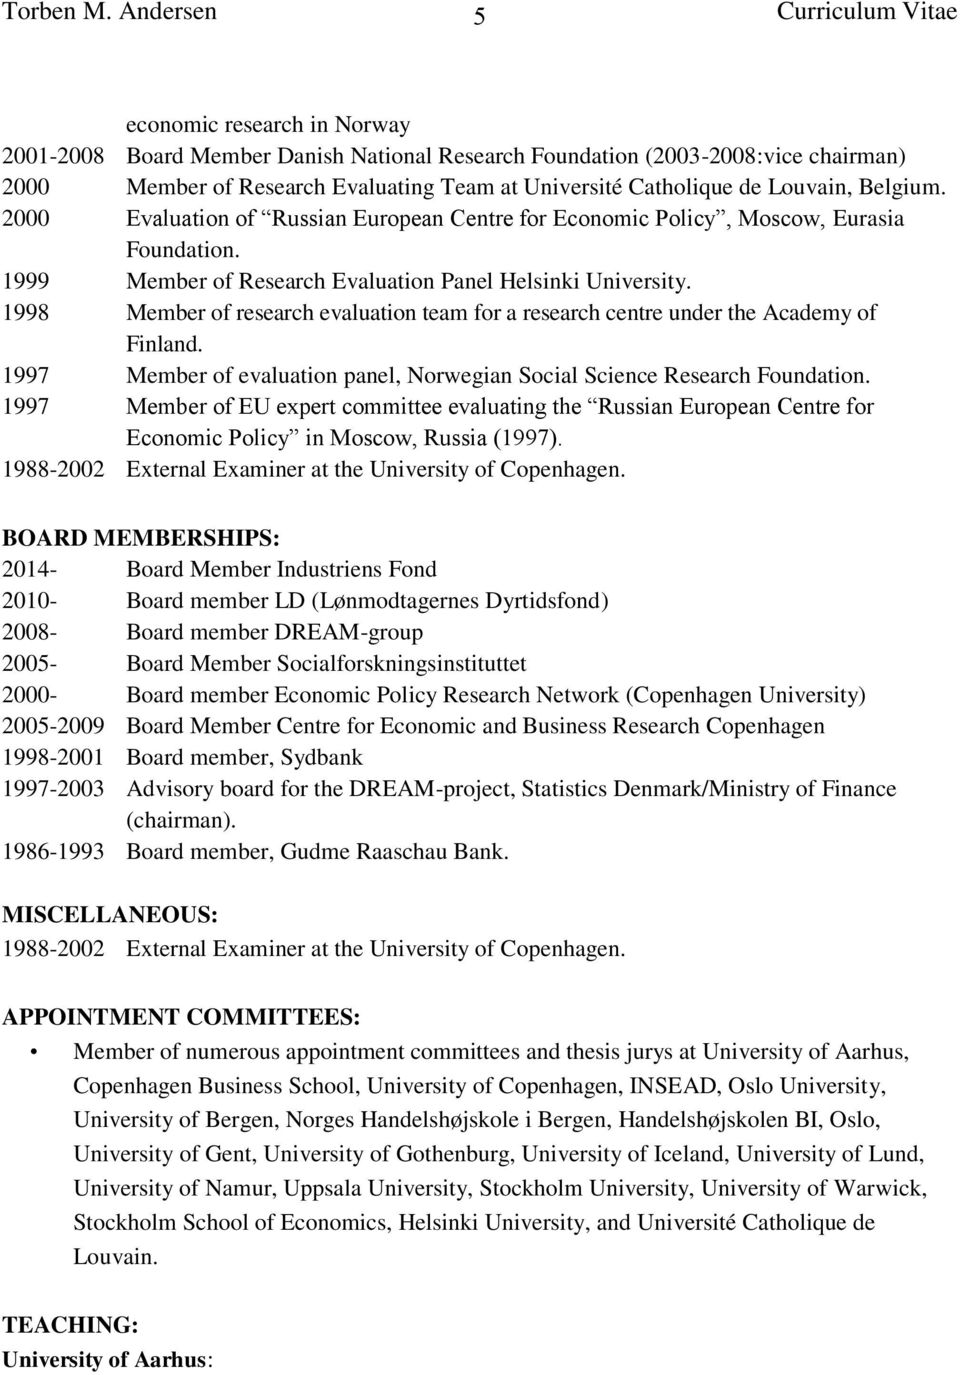 Catholique de Louvain, Belgium. 2000 Evaluation of Russian European Centre for Economic Policy, Moscow, Eurasia Foundation. 1999 Member of Research Evaluation Panel Helsinki University.